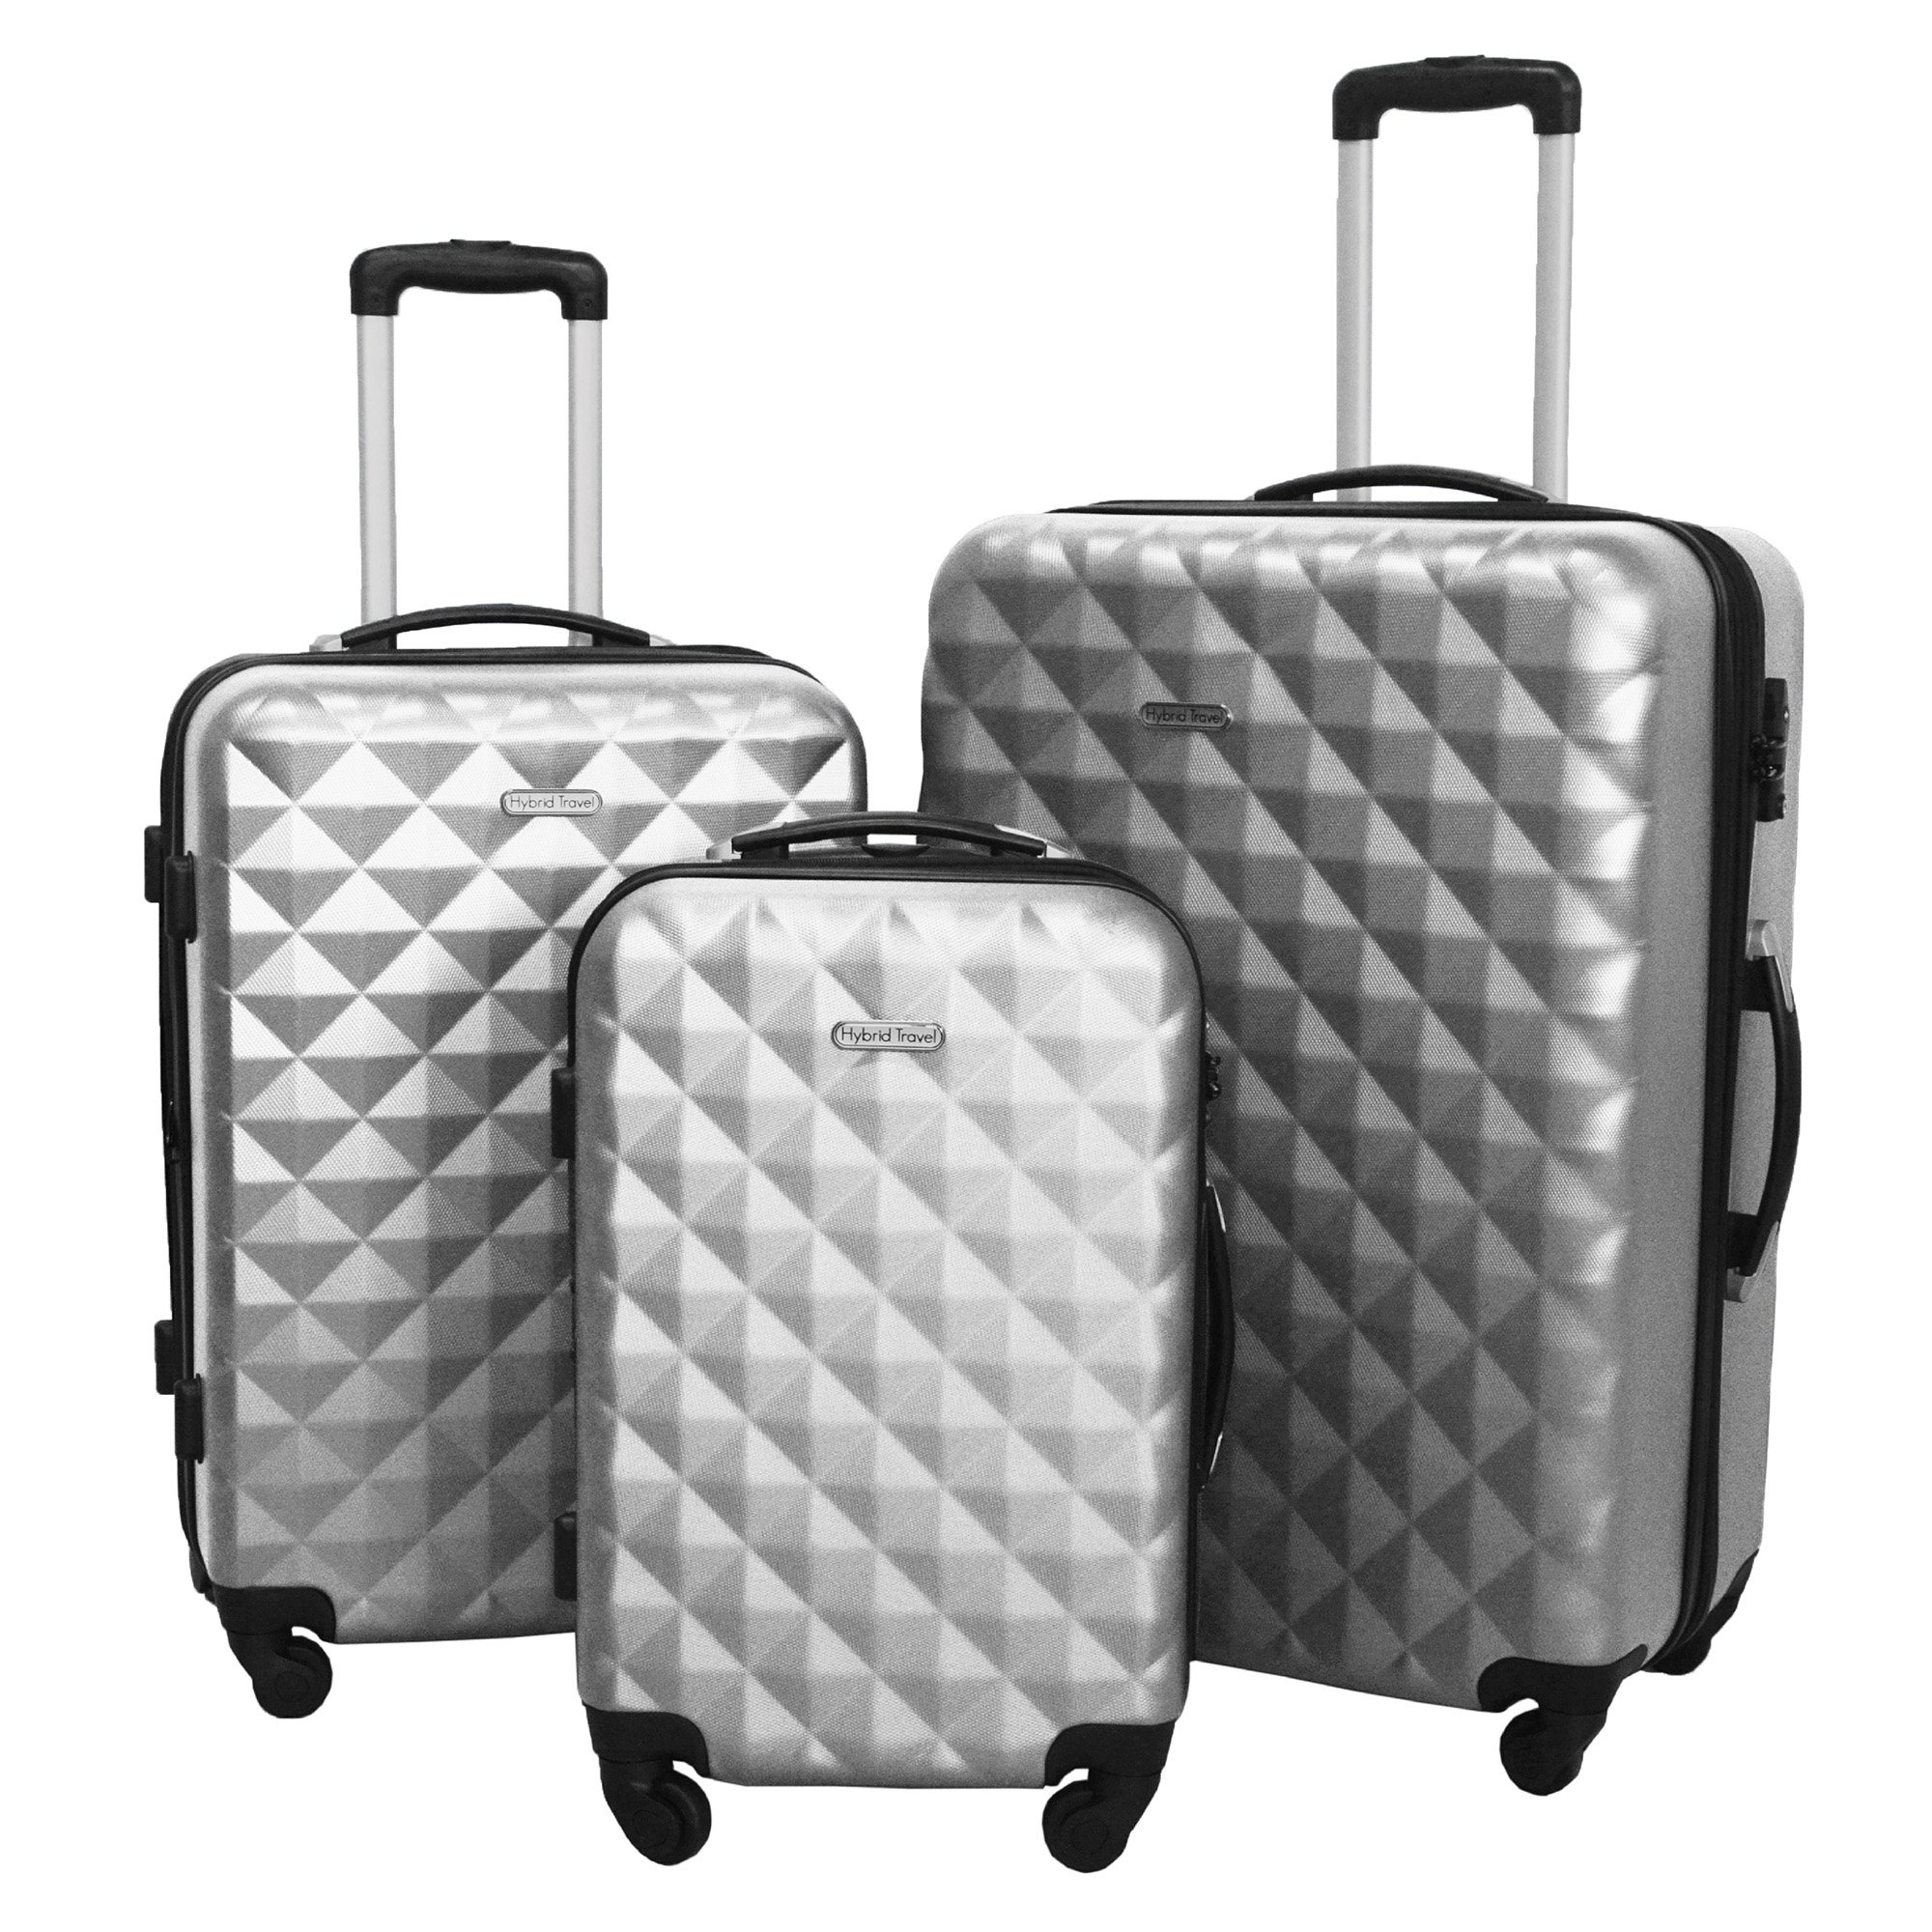 3 Piece Luggage Set Durable Lightweight Hard Case Spinner Suitecase LUG3 SS577A SILVER SILVER by HyBrid & Company